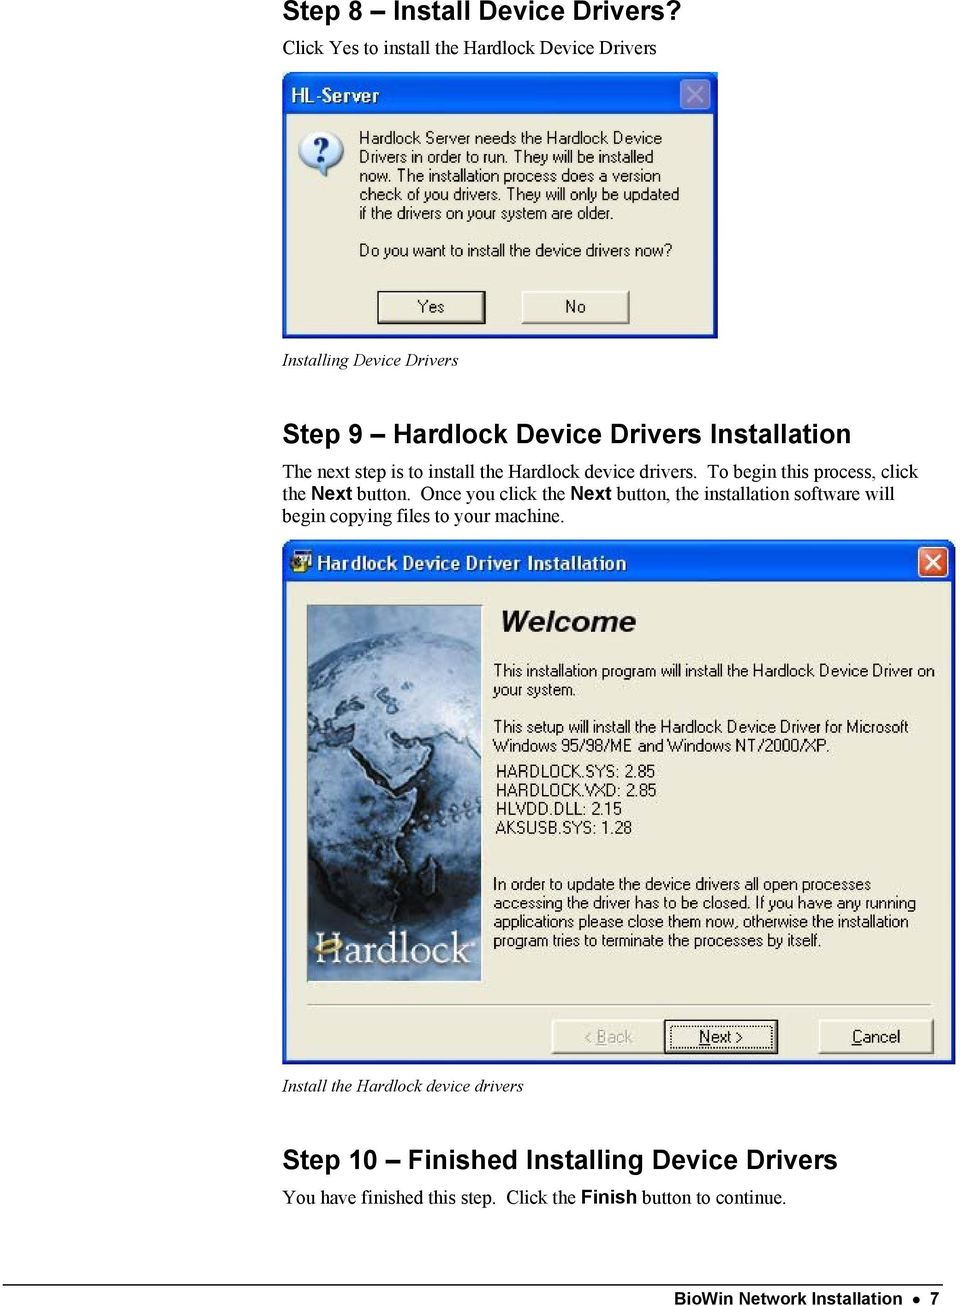 step is to install the Hardlock device drivers. To begin this process, click the Next button.